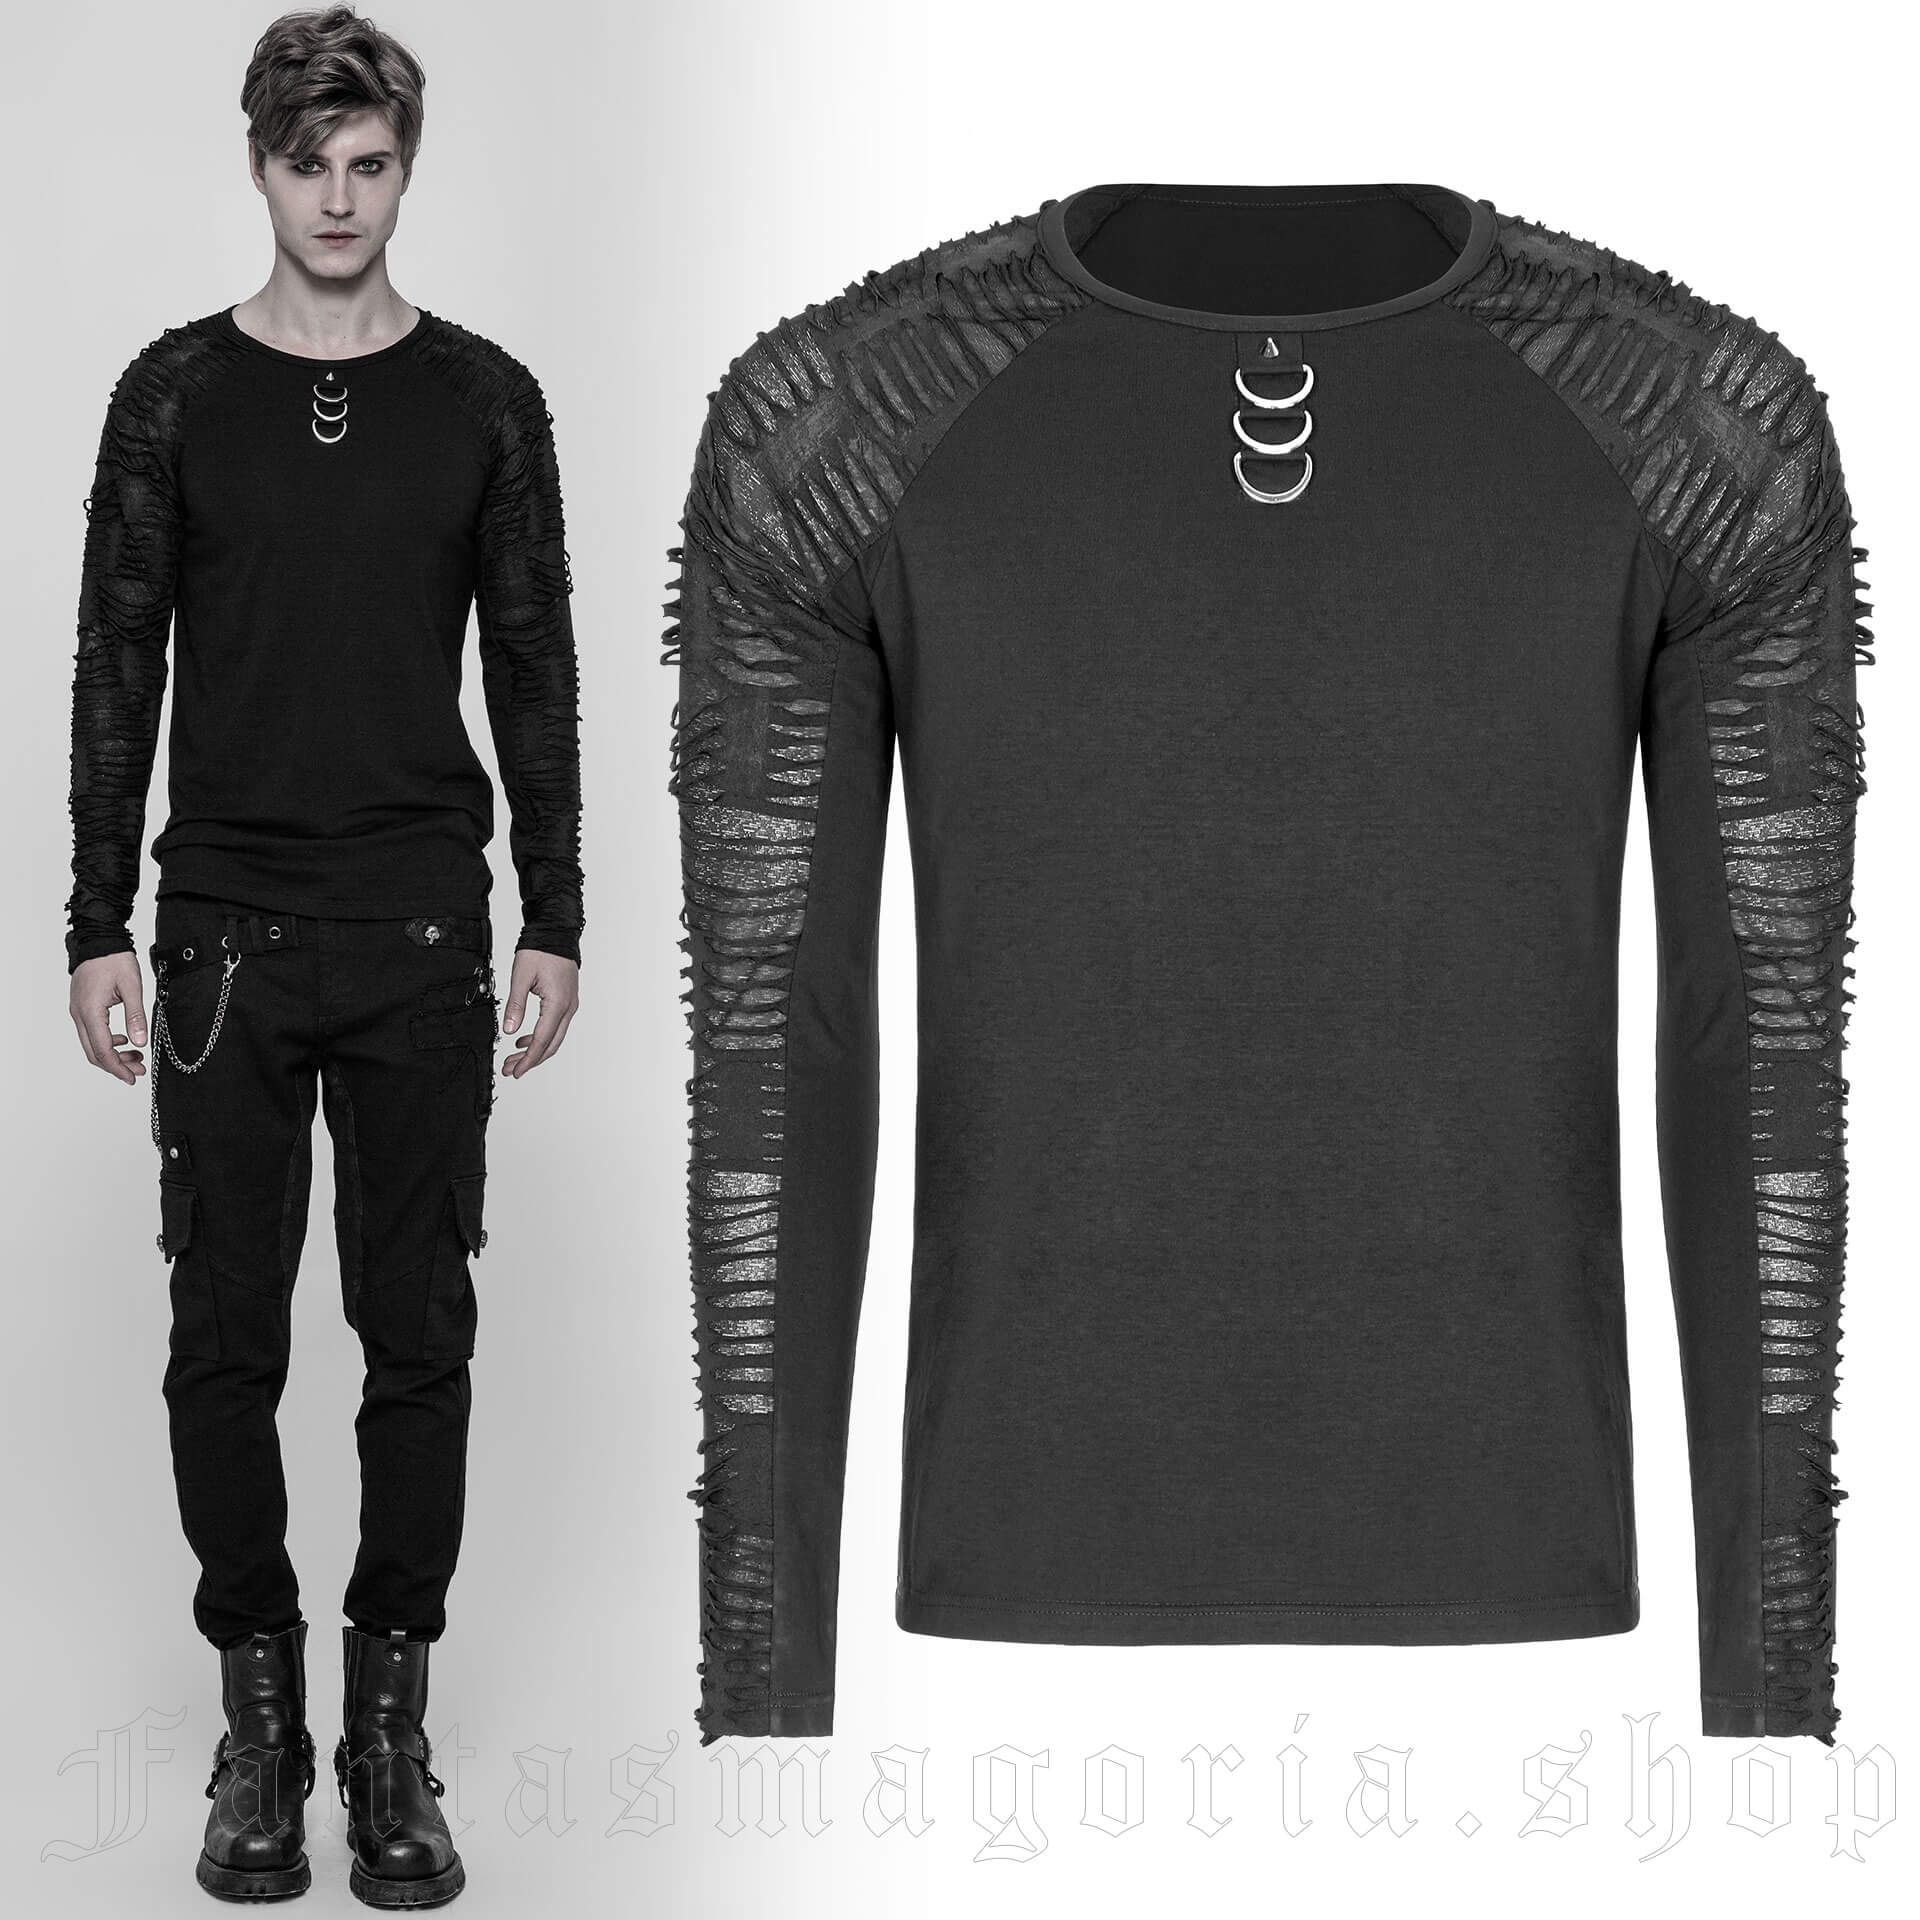 men's Nazgul Longlseeve Top by PUNK RAVE brand, code: WT-524